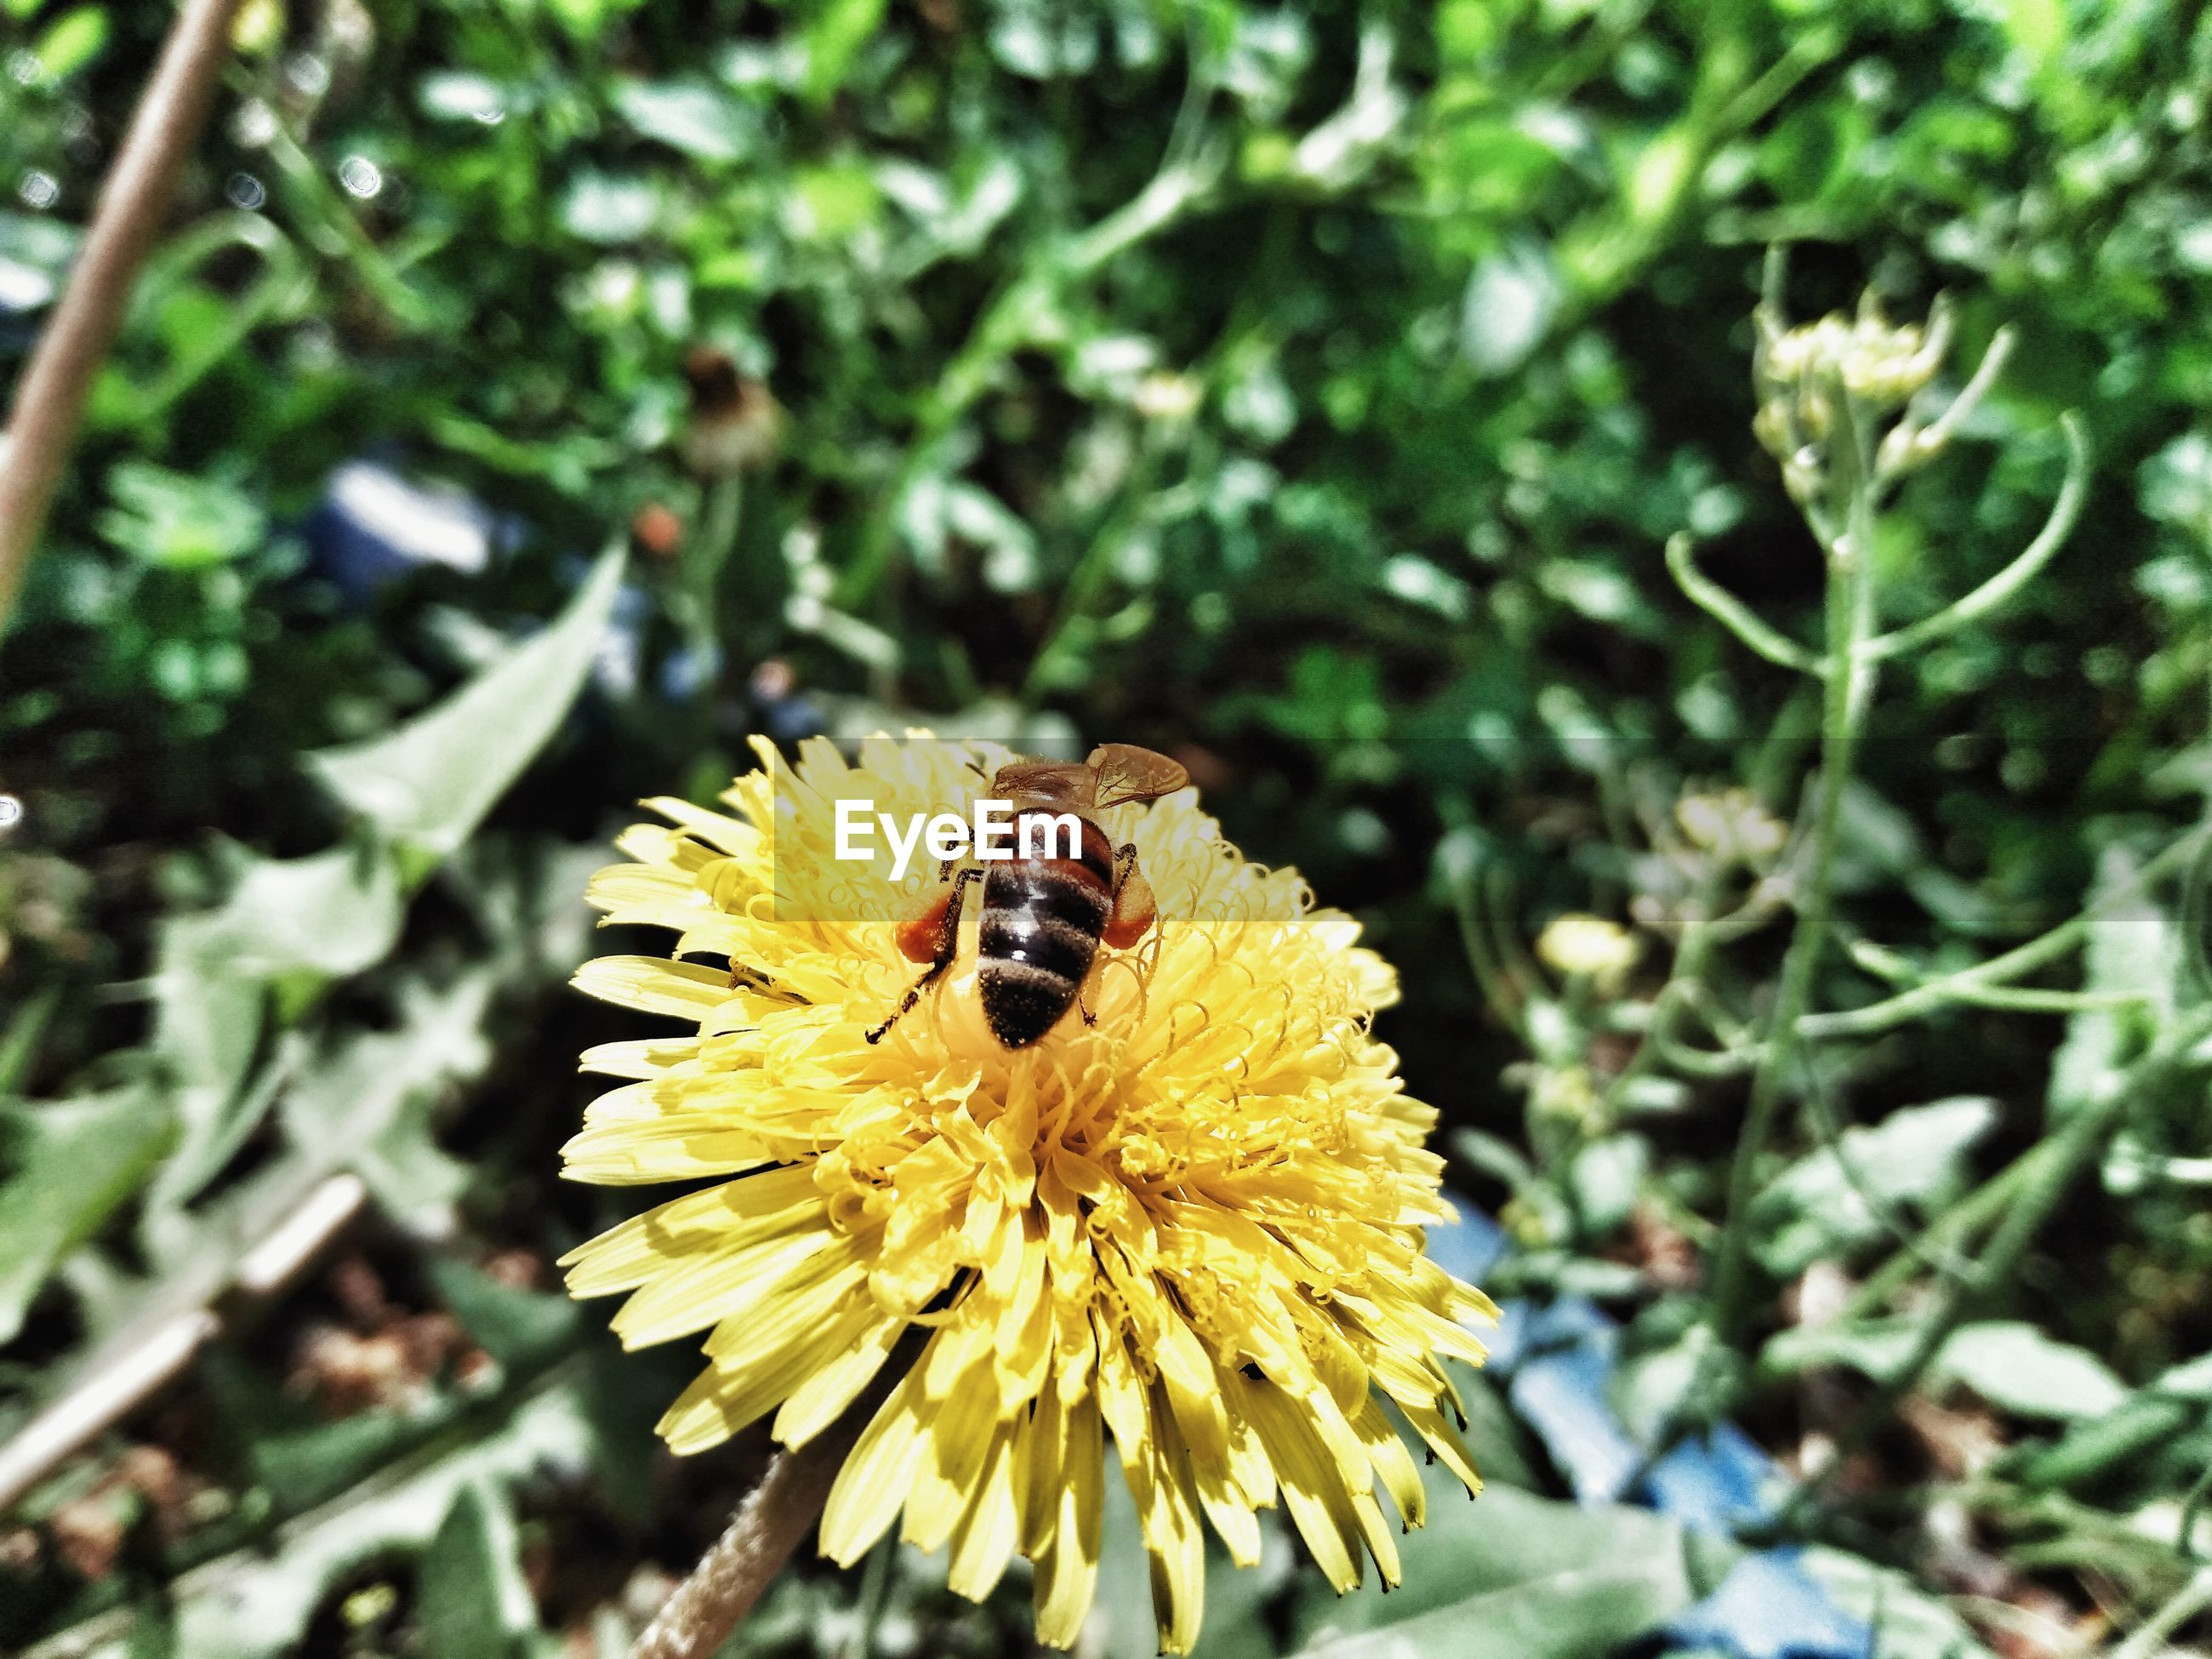 invertebrate, animal themes, insect, flower, animal wildlife, animals in the wild, flowering plant, animal, one animal, bee, beauty in nature, plant, petal, flower head, fragility, close-up, yellow, growth, vulnerability, focus on foreground, pollination, no people, outdoors, bumblebee, pollen